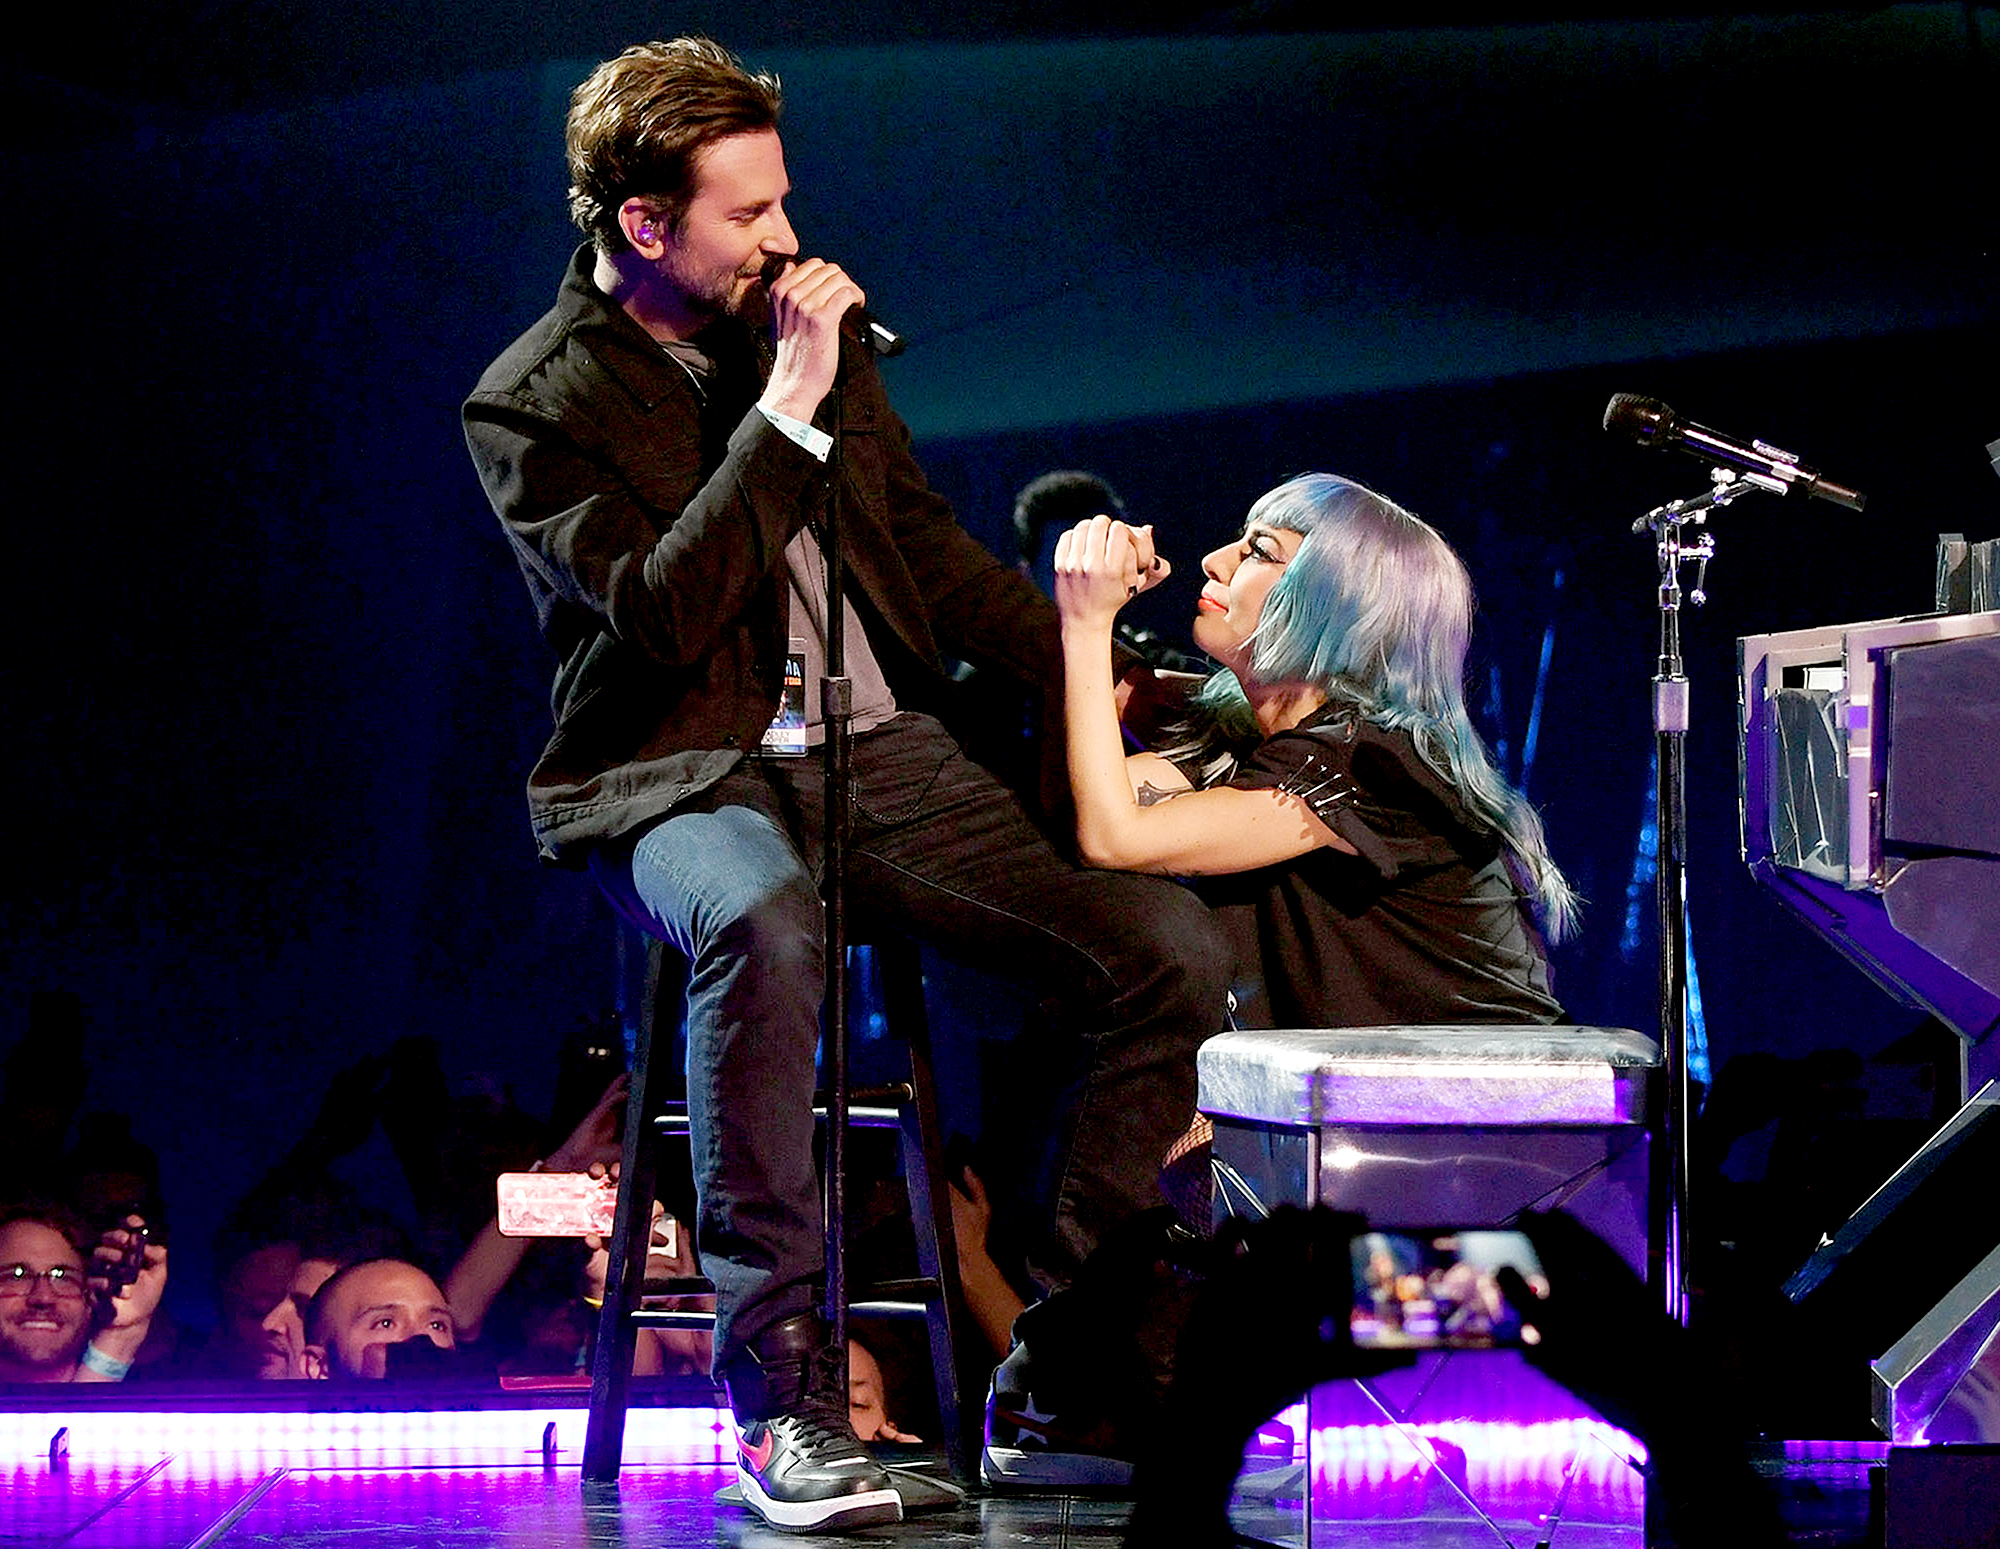 "bradley-cooper-lady-gaga-shallow grammys - ""Fall In Line"" — Christina Aguilera featuring Demi Lovato ""Don't Go Breaking My Heart — Backstreet Boys ""S Wonderful — Tony Bennett & Diana Krall ""Shallow"" — Lady Gaga & Bradley Cooper ""Girls Like You"" — Maroon 5 featuring Cardi B ""Say Something — Justin Timberlake featuring Chris Stapleton ""The Middle — Zedd, Maren Morris & Grey"